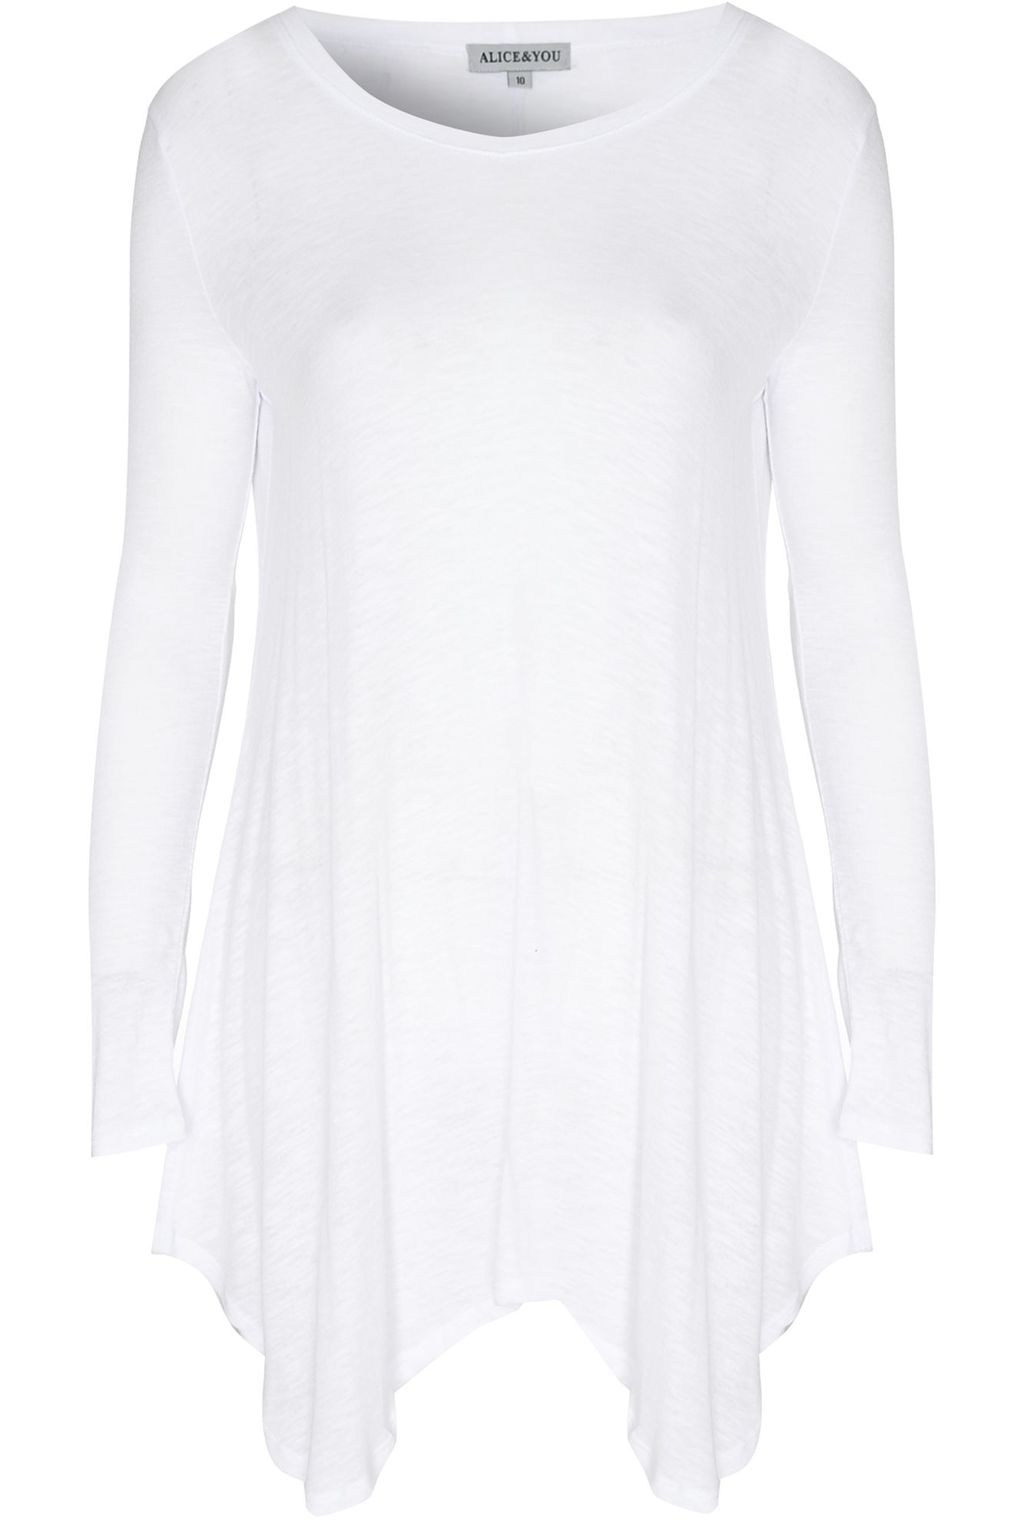 Asymmetric Swing Dress, White - length: mid thigh; neckline: round neck; pattern: plain; predominant colour: white; occasions: casual; fit: body skimming; style: asymmetric (hem); fibres: cotton - mix; sleeve length: long sleeve; sleeve style: standard; pattern type: fabric; texture group: jersey - stretchy/drapey; season: s/s 2016; wardrobe: basic